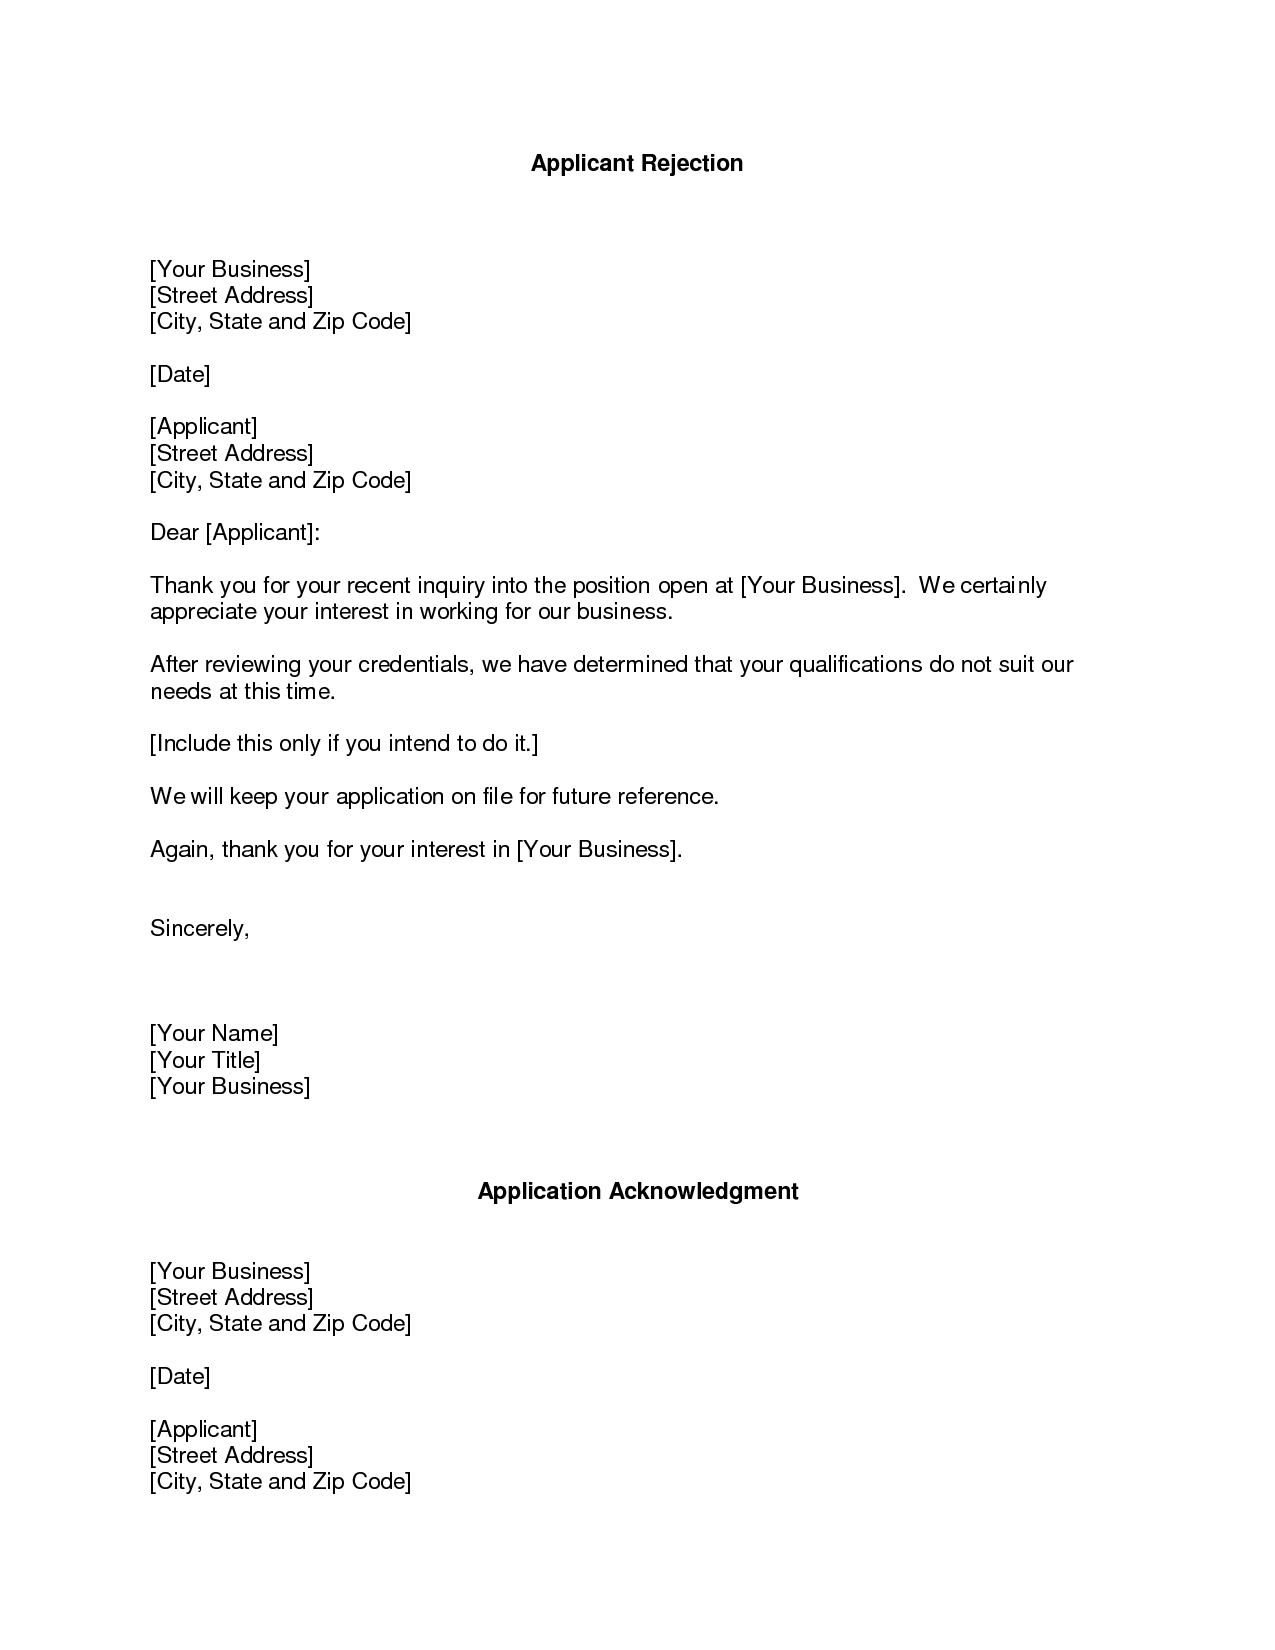 Business rejection letter the rejection letter format is similar business rejection letter the rejection letter format is similar to the business letter format and should be followed correctly thecheapjerseys Images